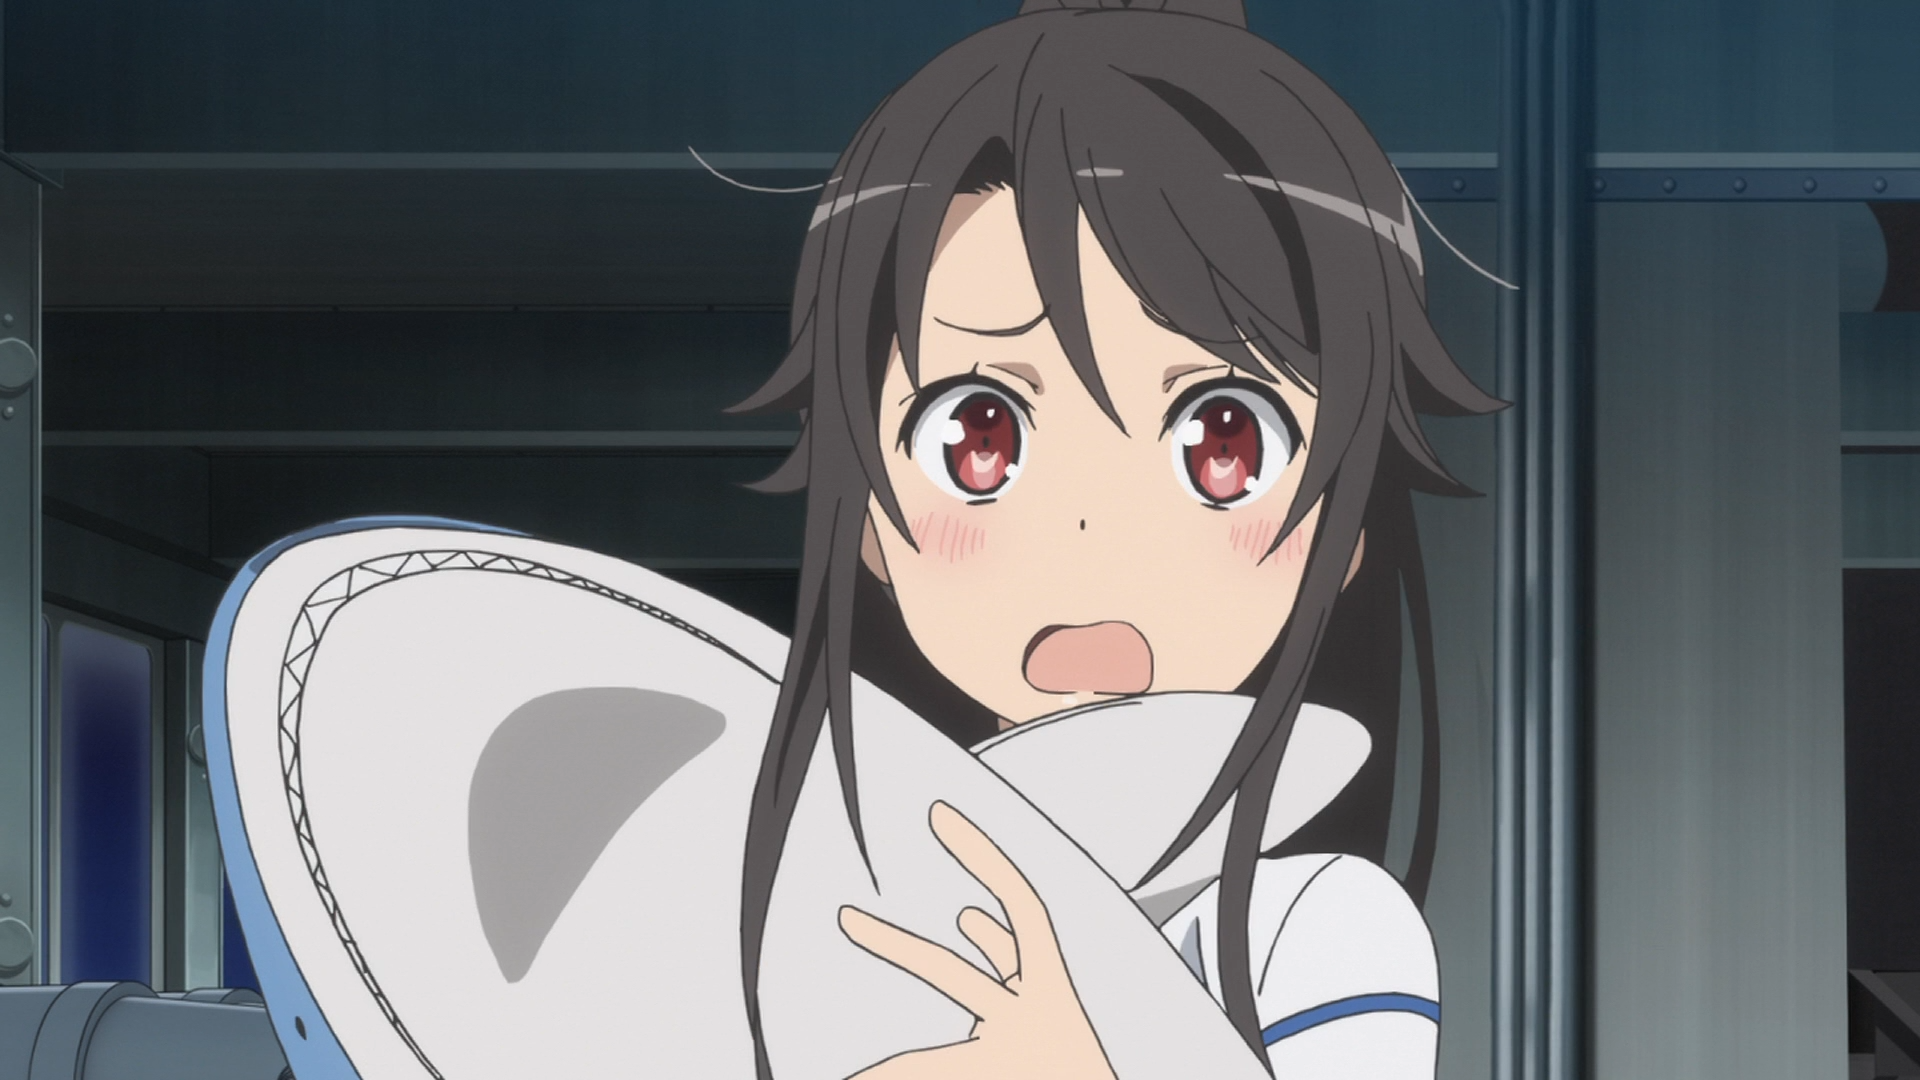 Having just awoken from a sound slumber, deputy captain Mashiro Munetani clutches a shark stuffed animal with an embarrassed look on her face in a scene from the 2016 High School Fleet TV anime.